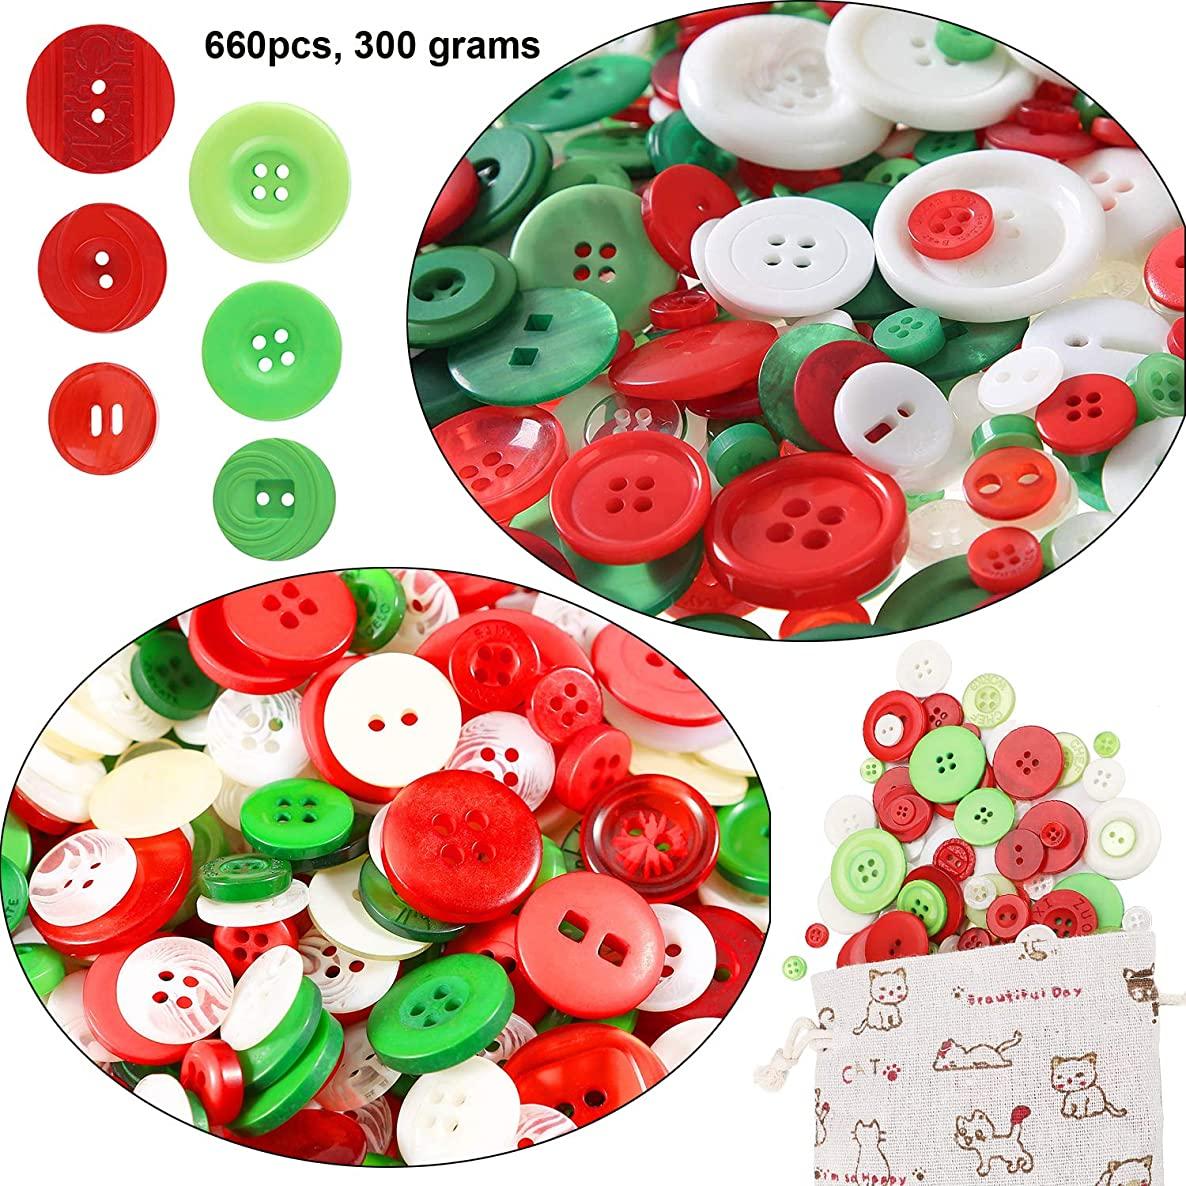 Round Craft Resin Buttons for Crafts Sewing Decorations (660pcs) – OOTSR Favorite Findings Basic Buttons for Children's Manual Button Painting with Drawstring Gift Bag (300g, Red, Green and White)